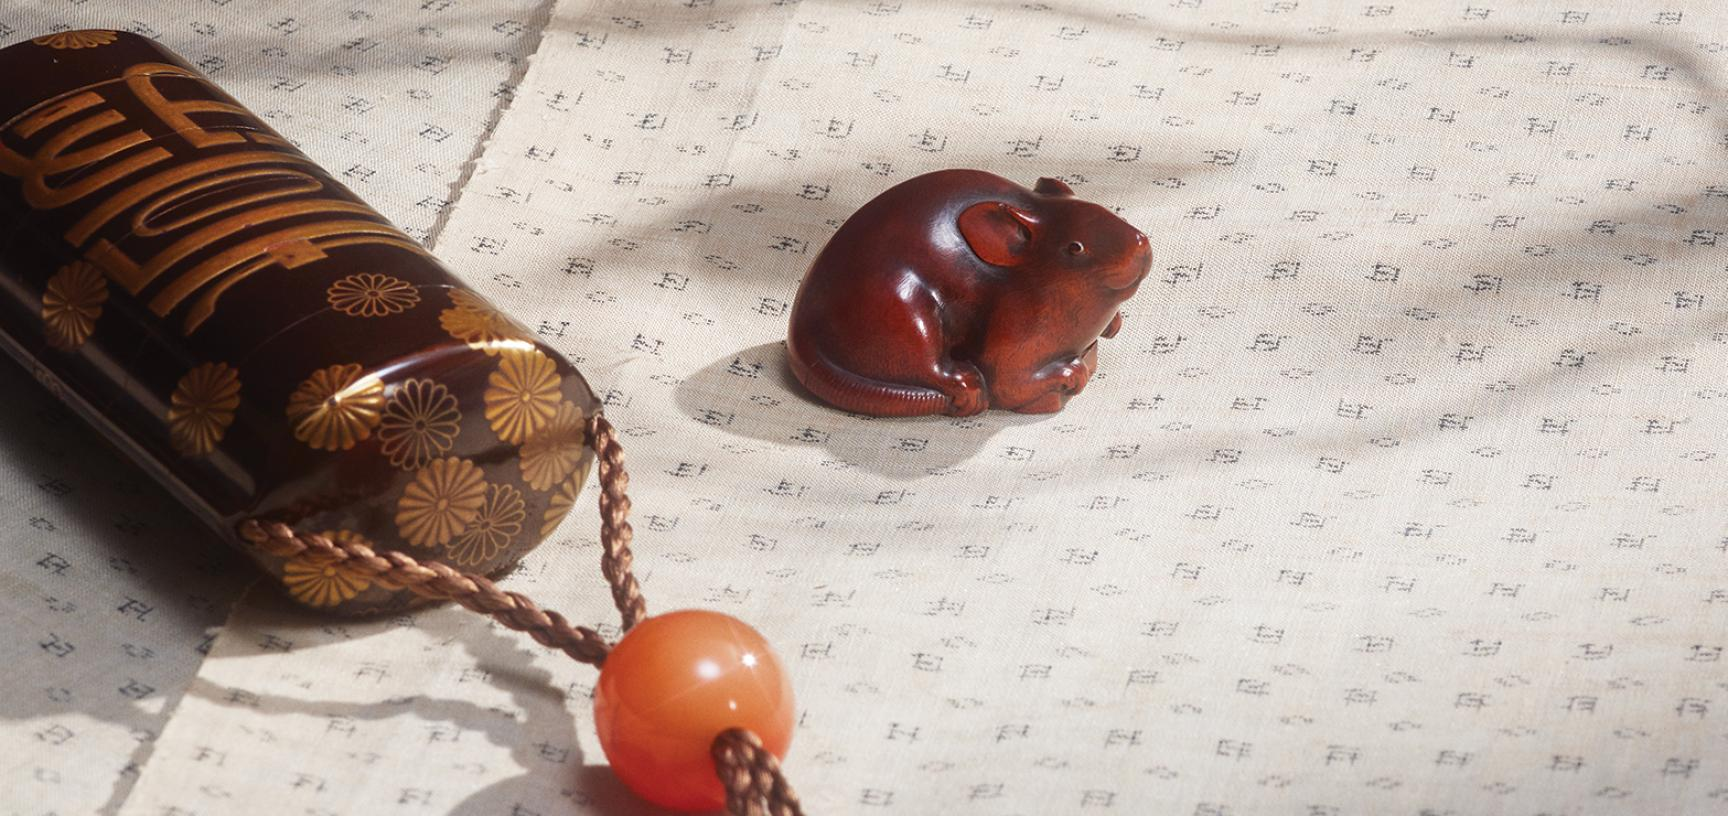 Netsuke in the form of a rat, Kano Tomokazu, 1800-40